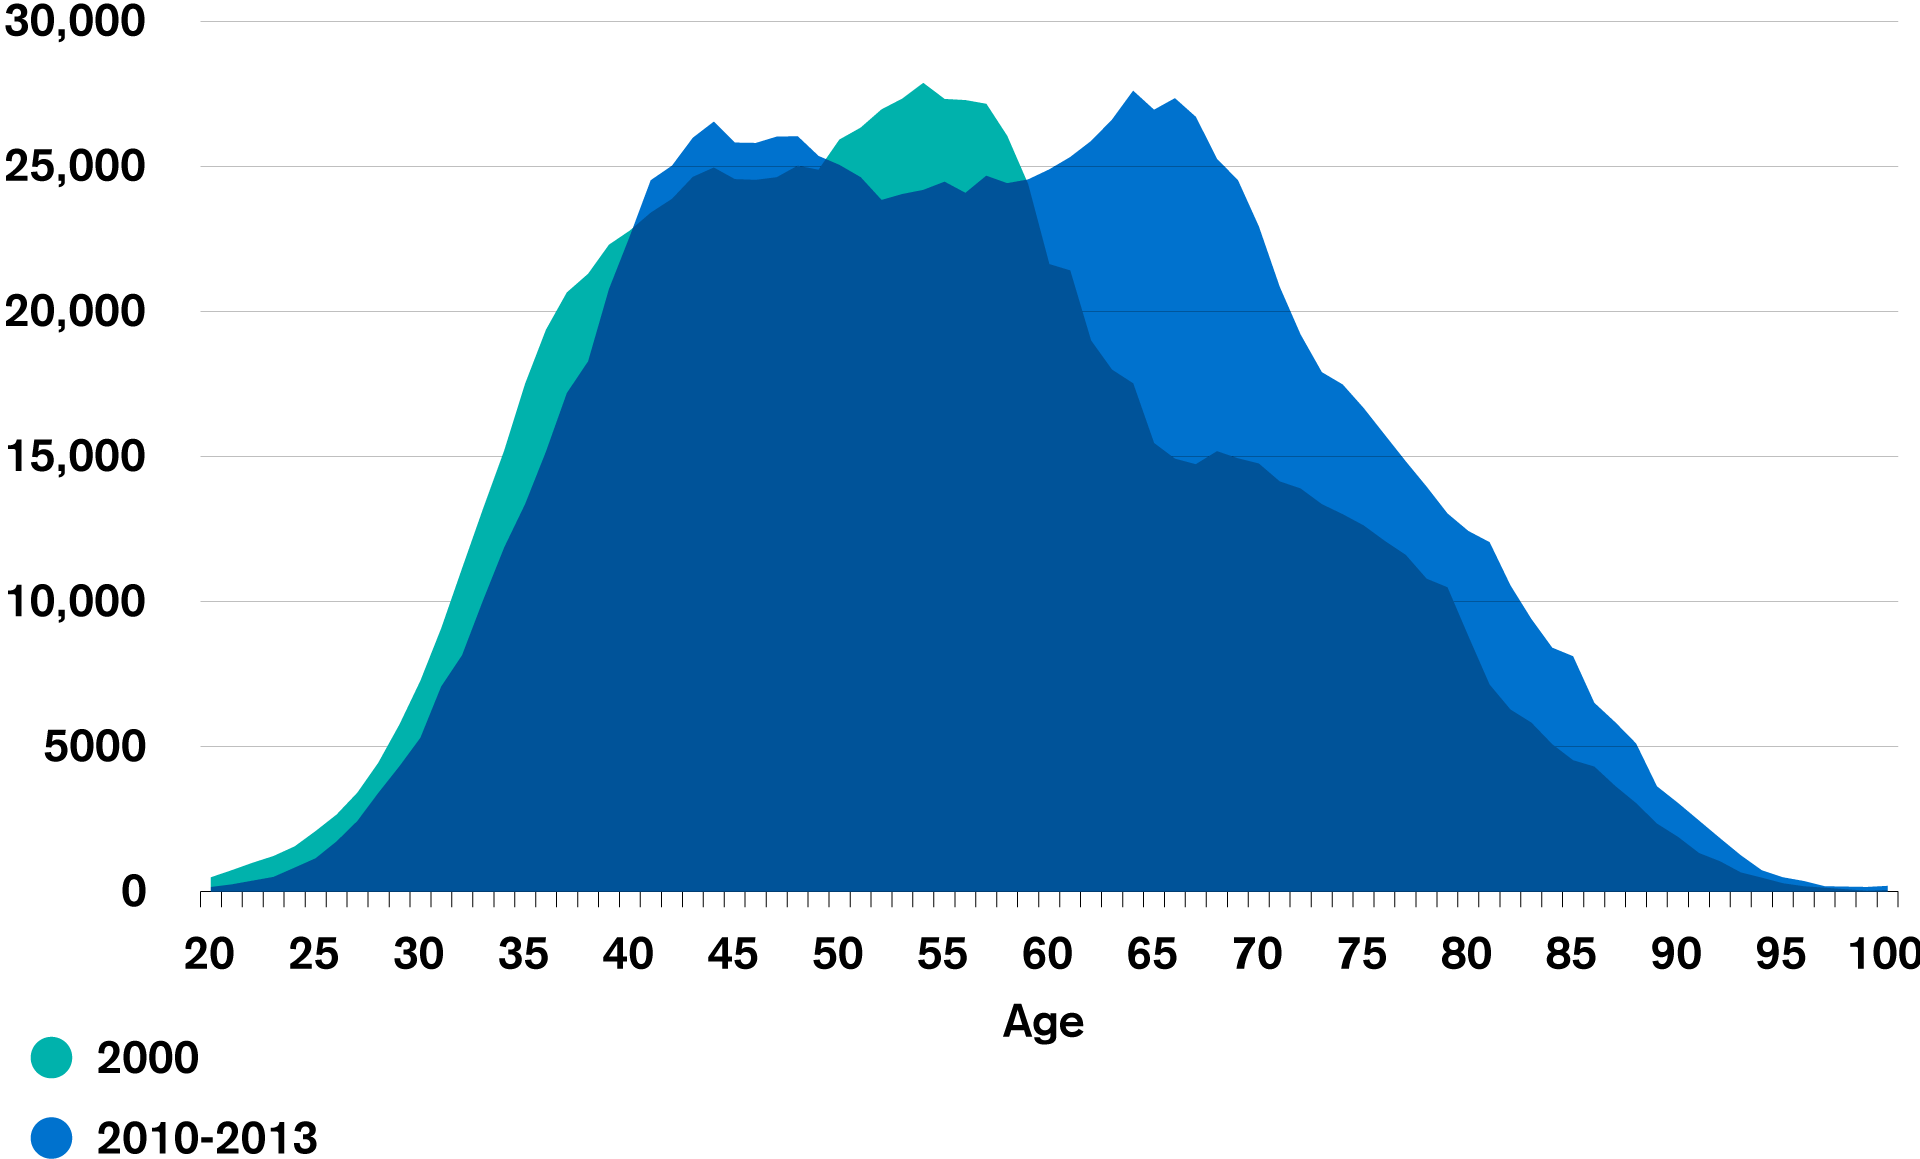 Number of home owners by age